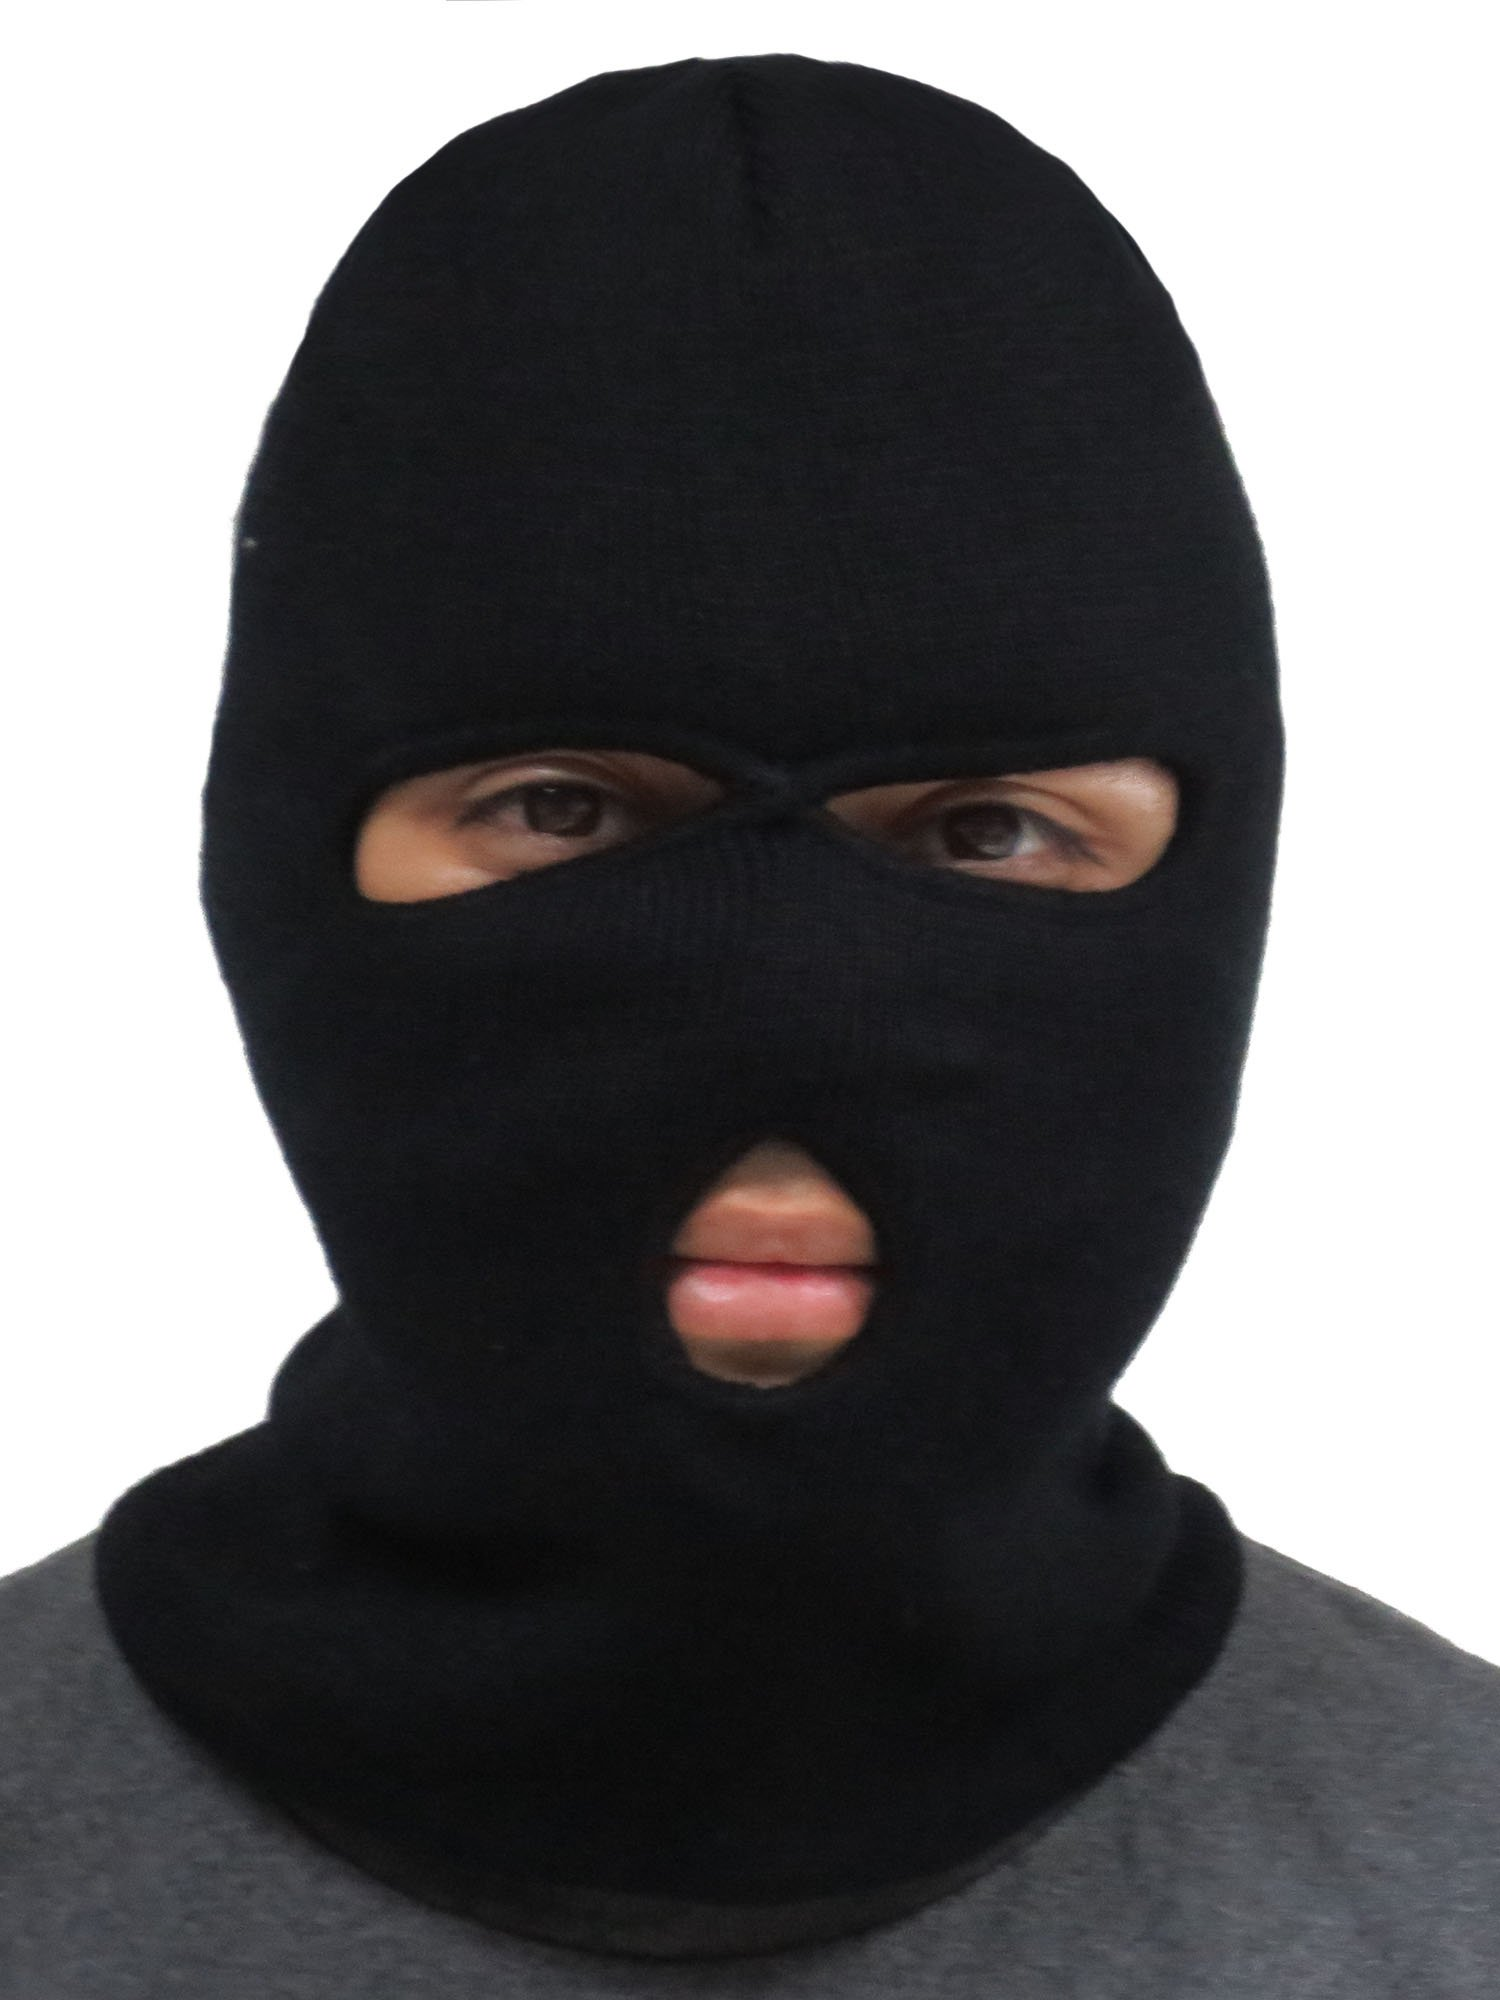 e2f8c86d516 Galleon - Outdoor Sports Lightweight Ski Mask Eye Hole Motorcycle Balaclava  Black 3 Hole